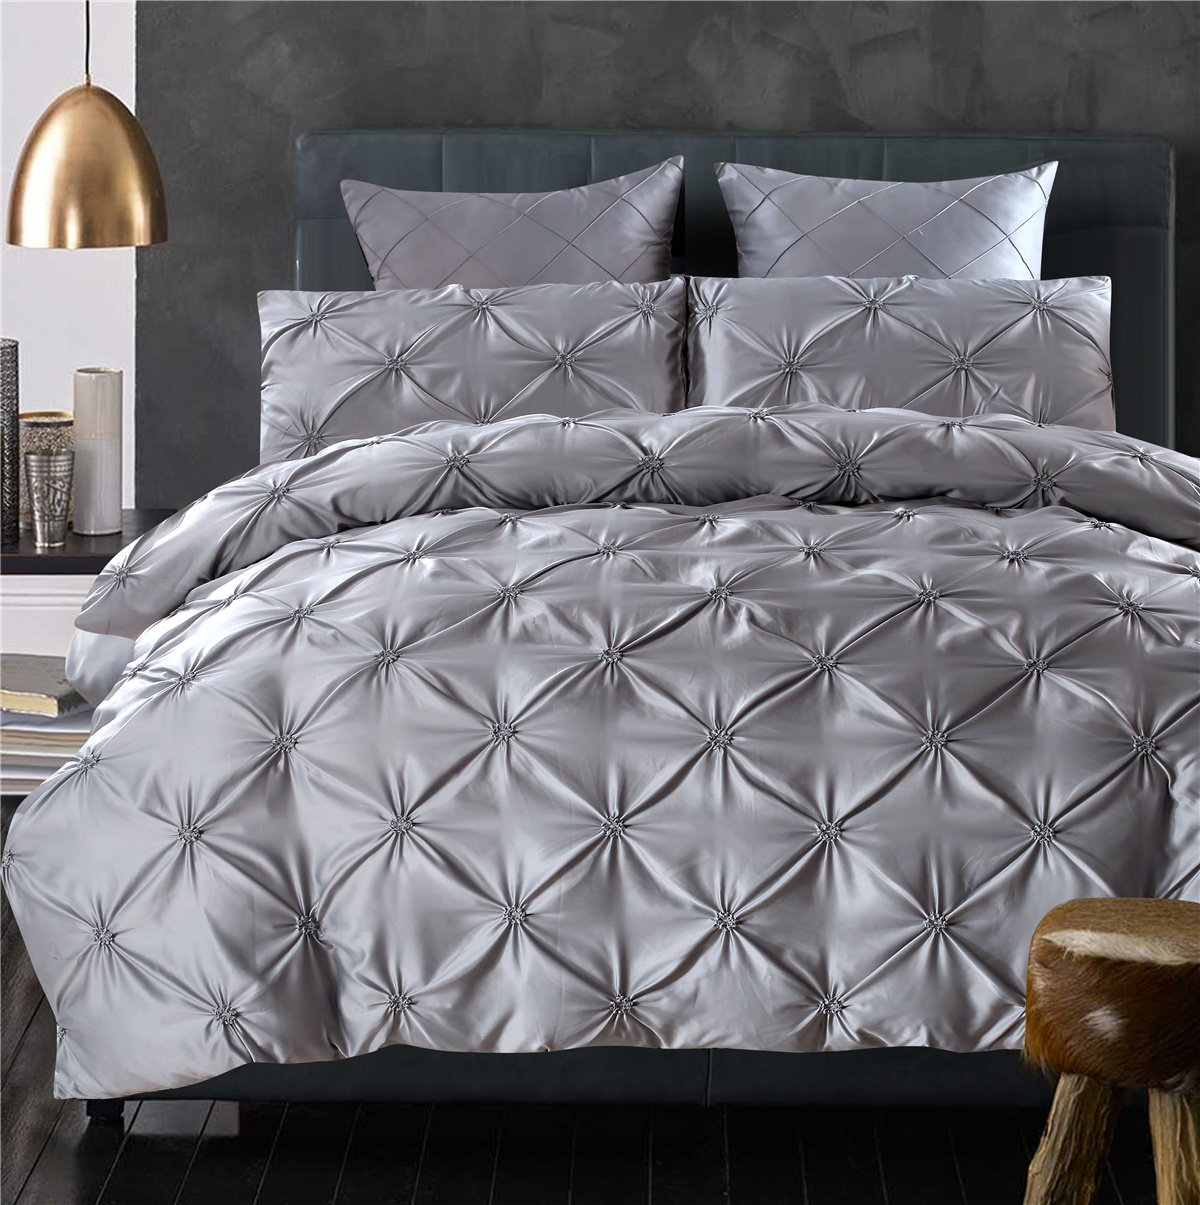 West Elm Organic Pintuck Duvet ikea shoe racks granite ...